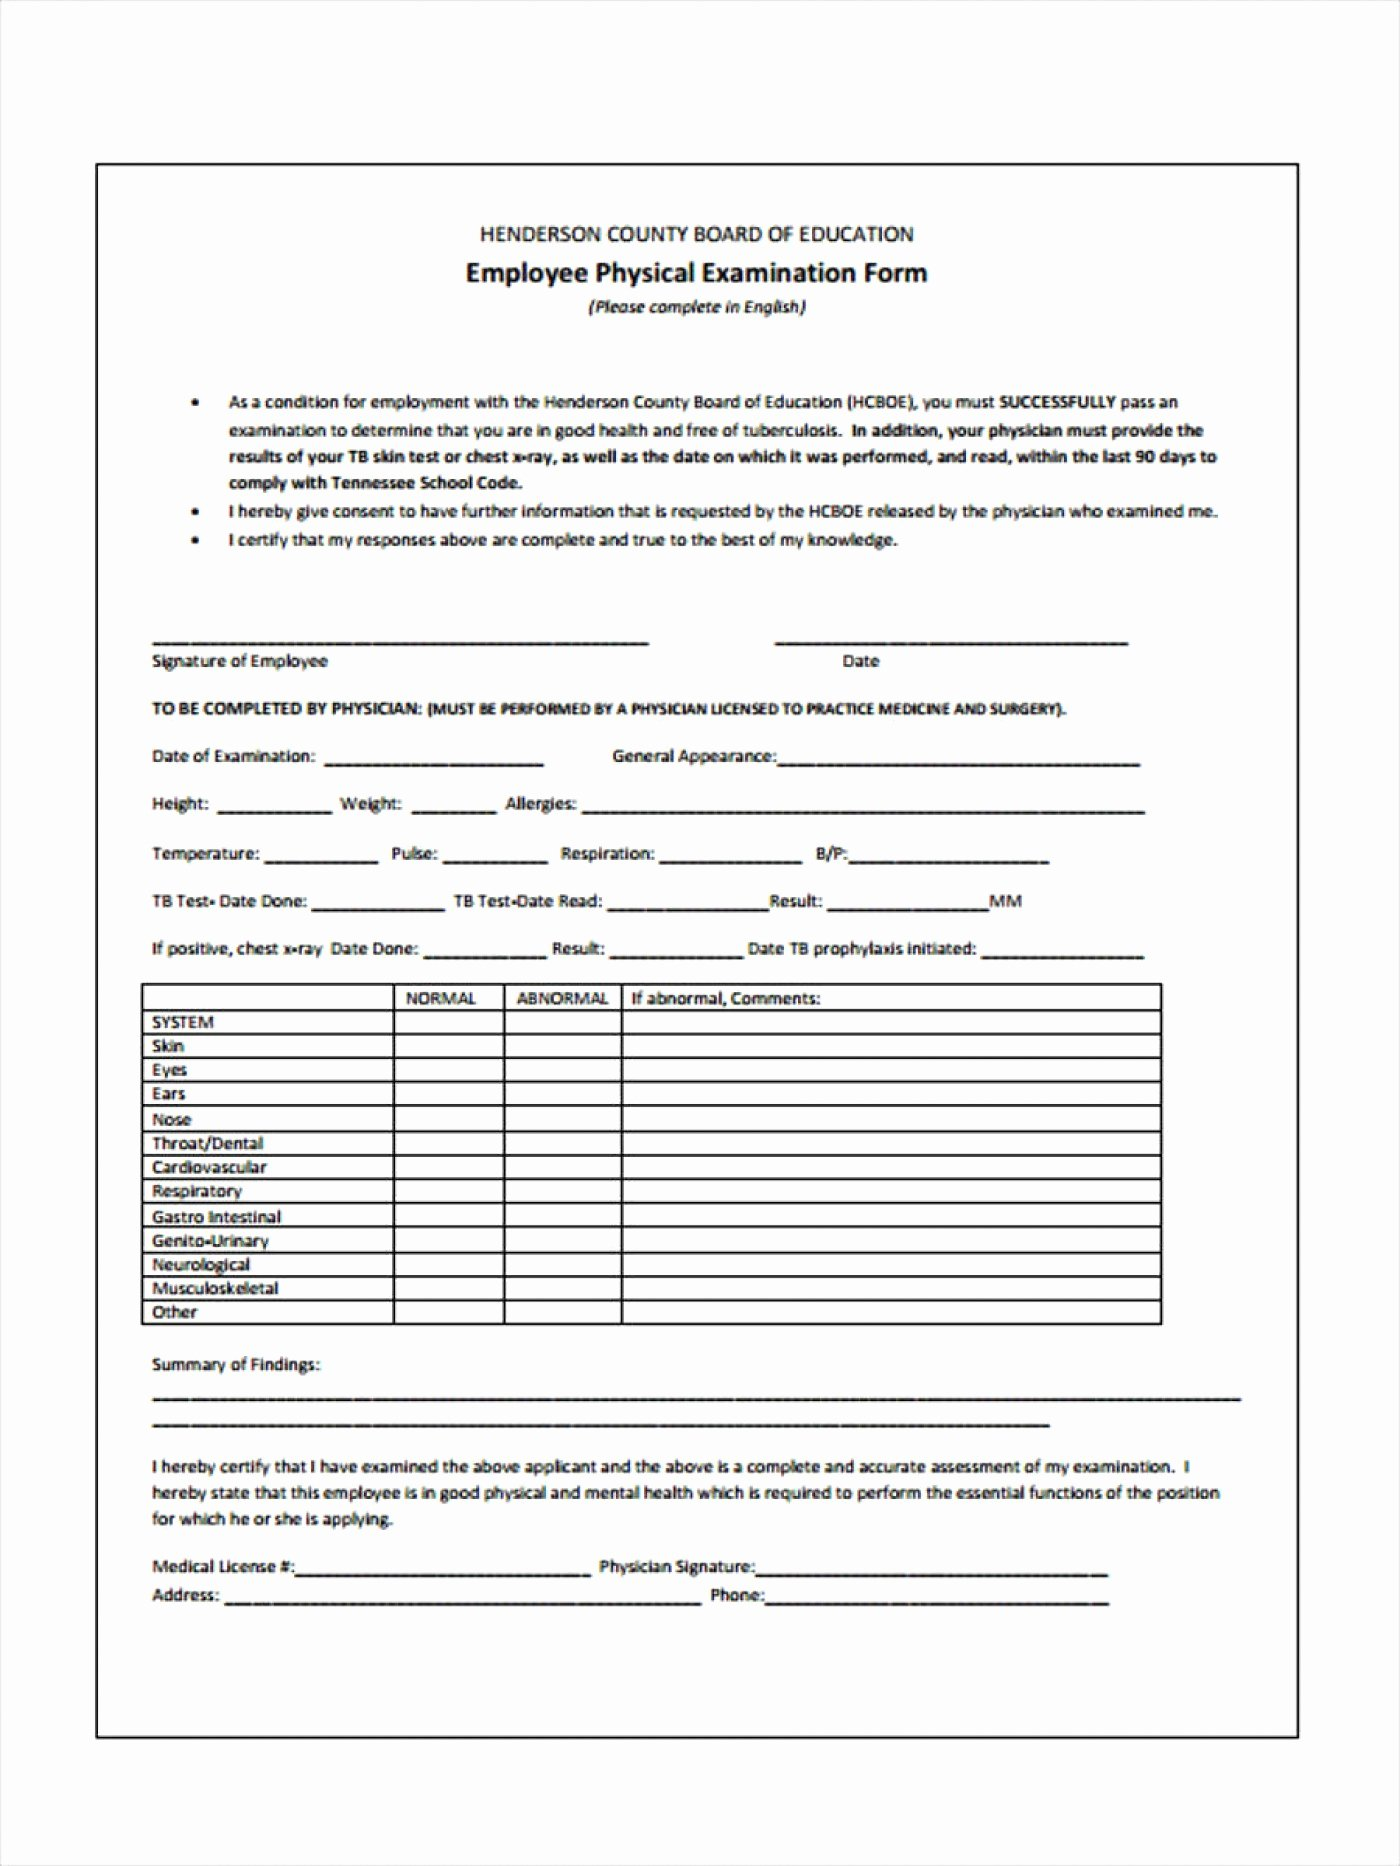 Physical Exam form Template Unique Veterinary Physical Exam form Template – Radiofama